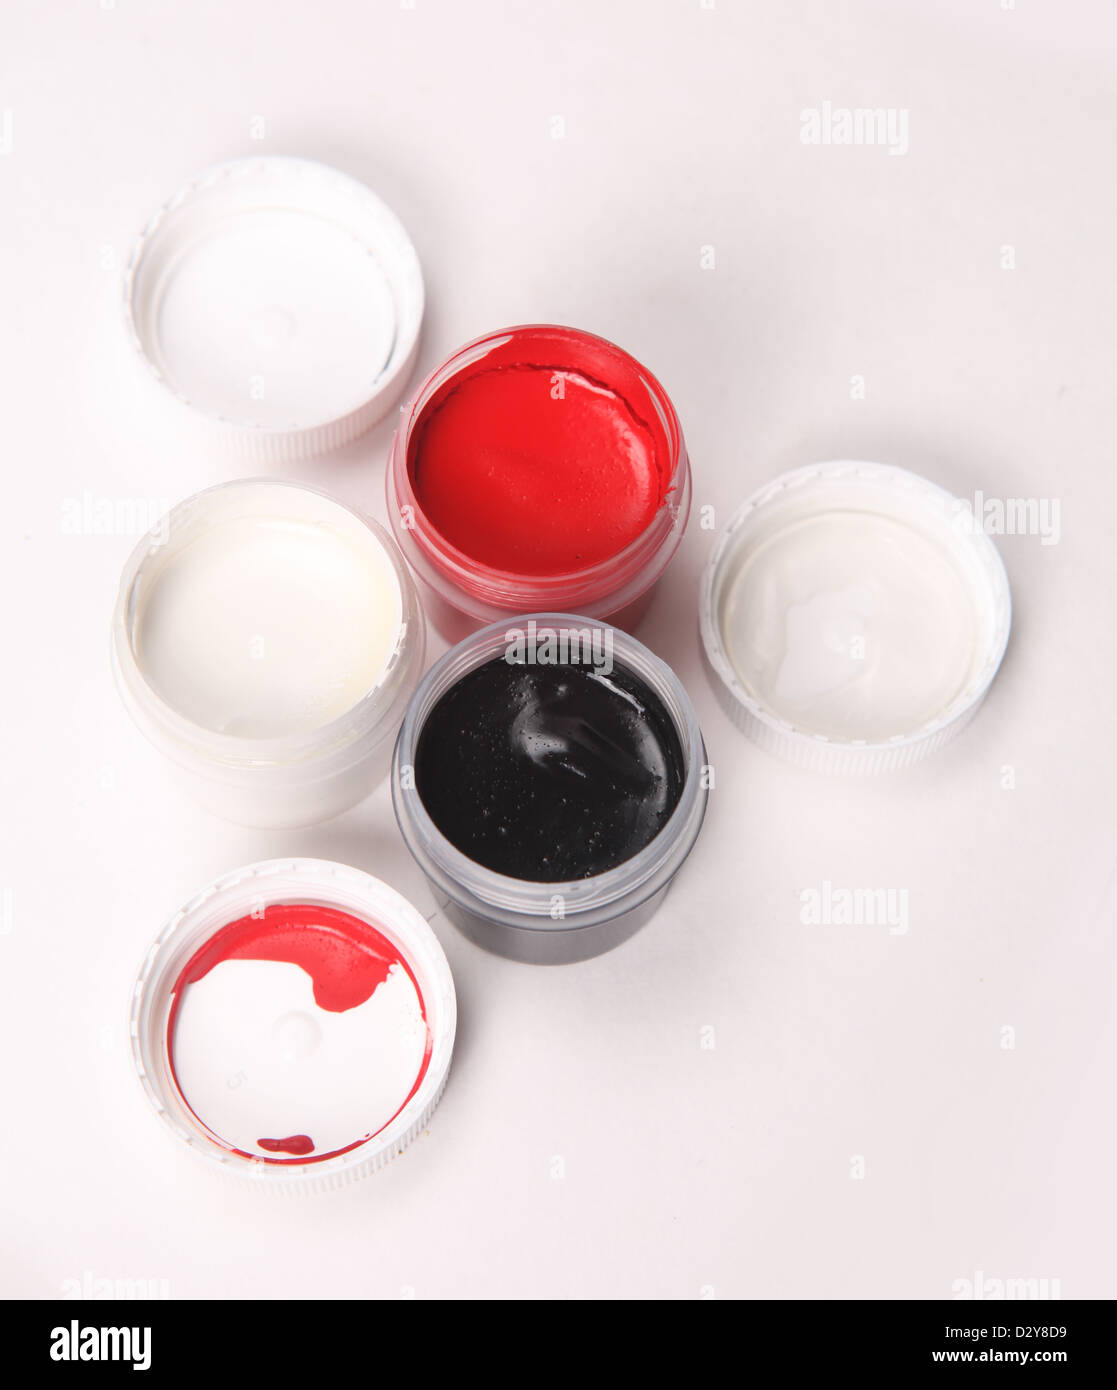 white, black and red gouache - Stock Image